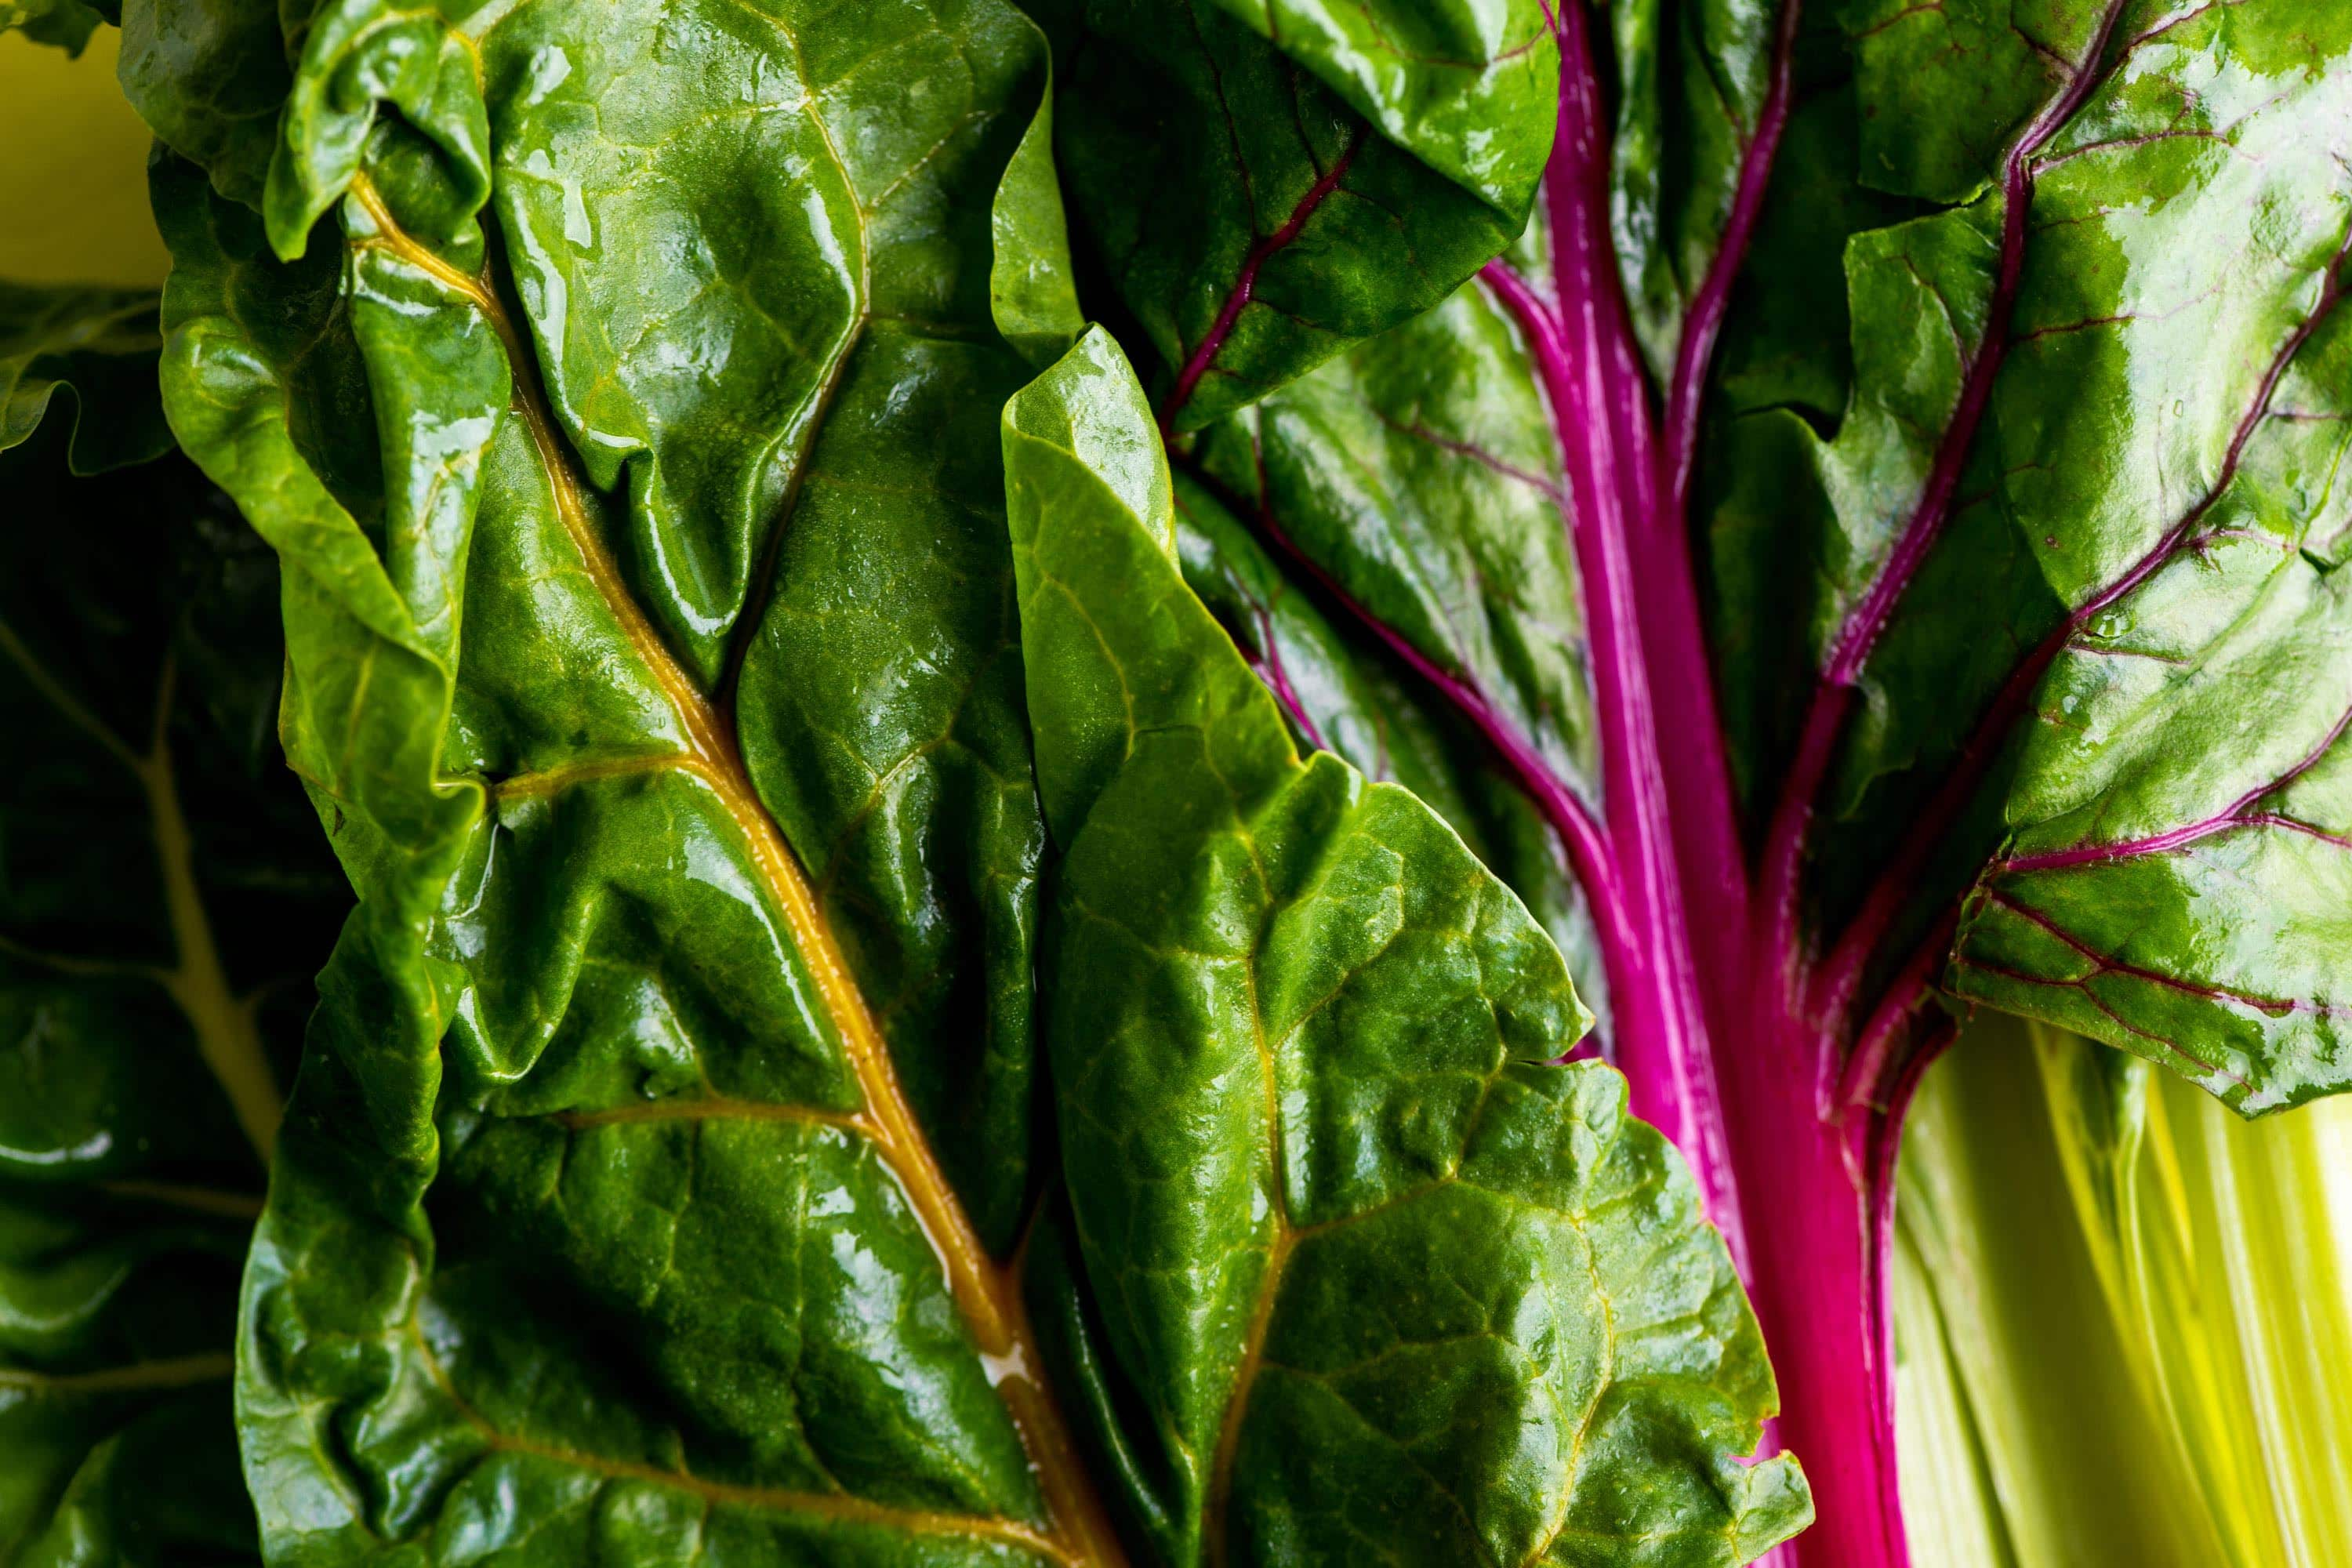 How To Cook Swiss Chard Swiss Chard Recipes The Mom 100